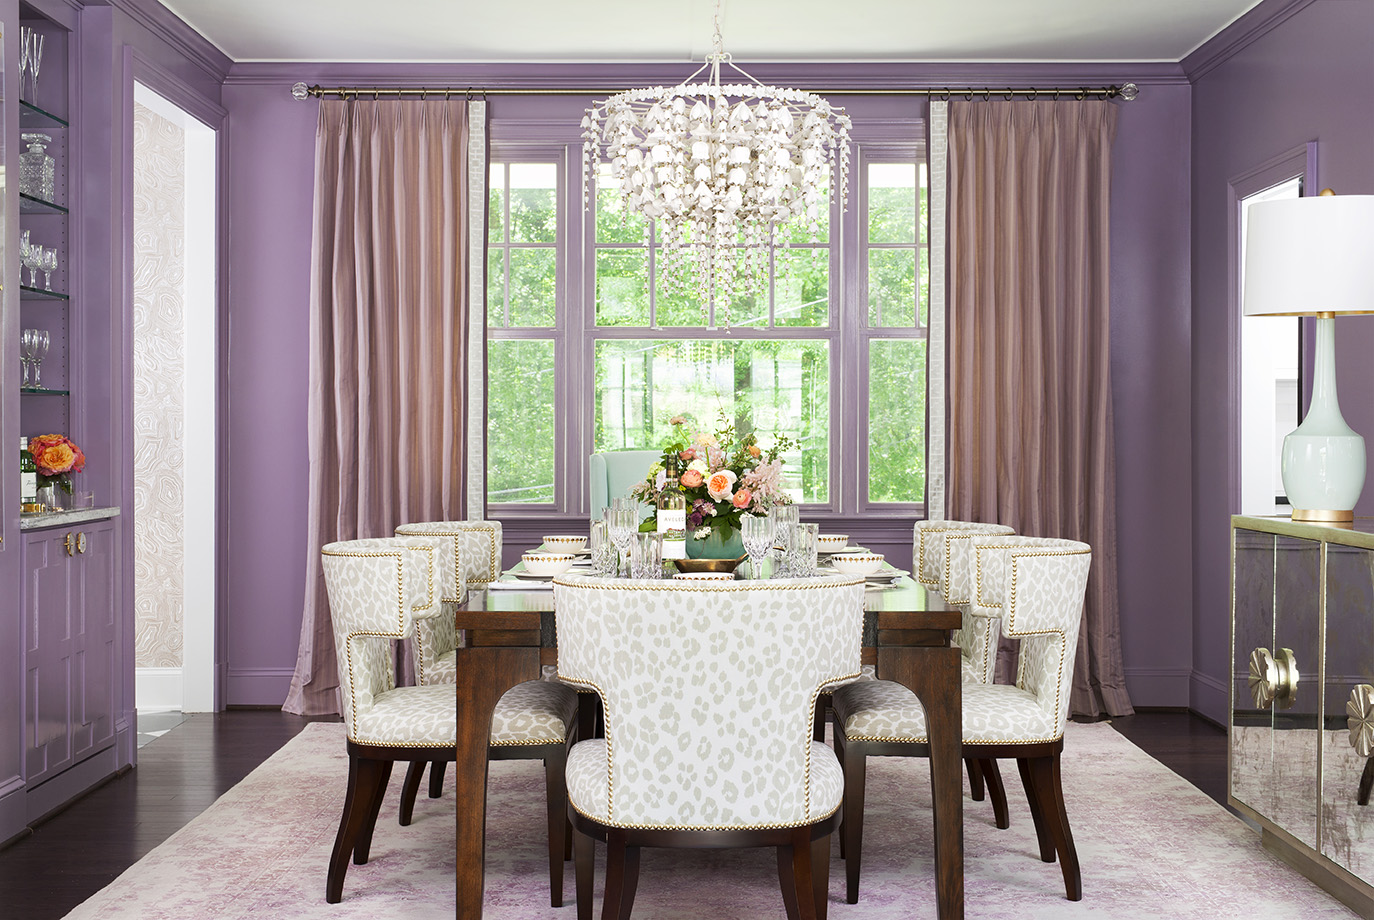 Passion and playful, this lavender themed dining room delights any dinner party